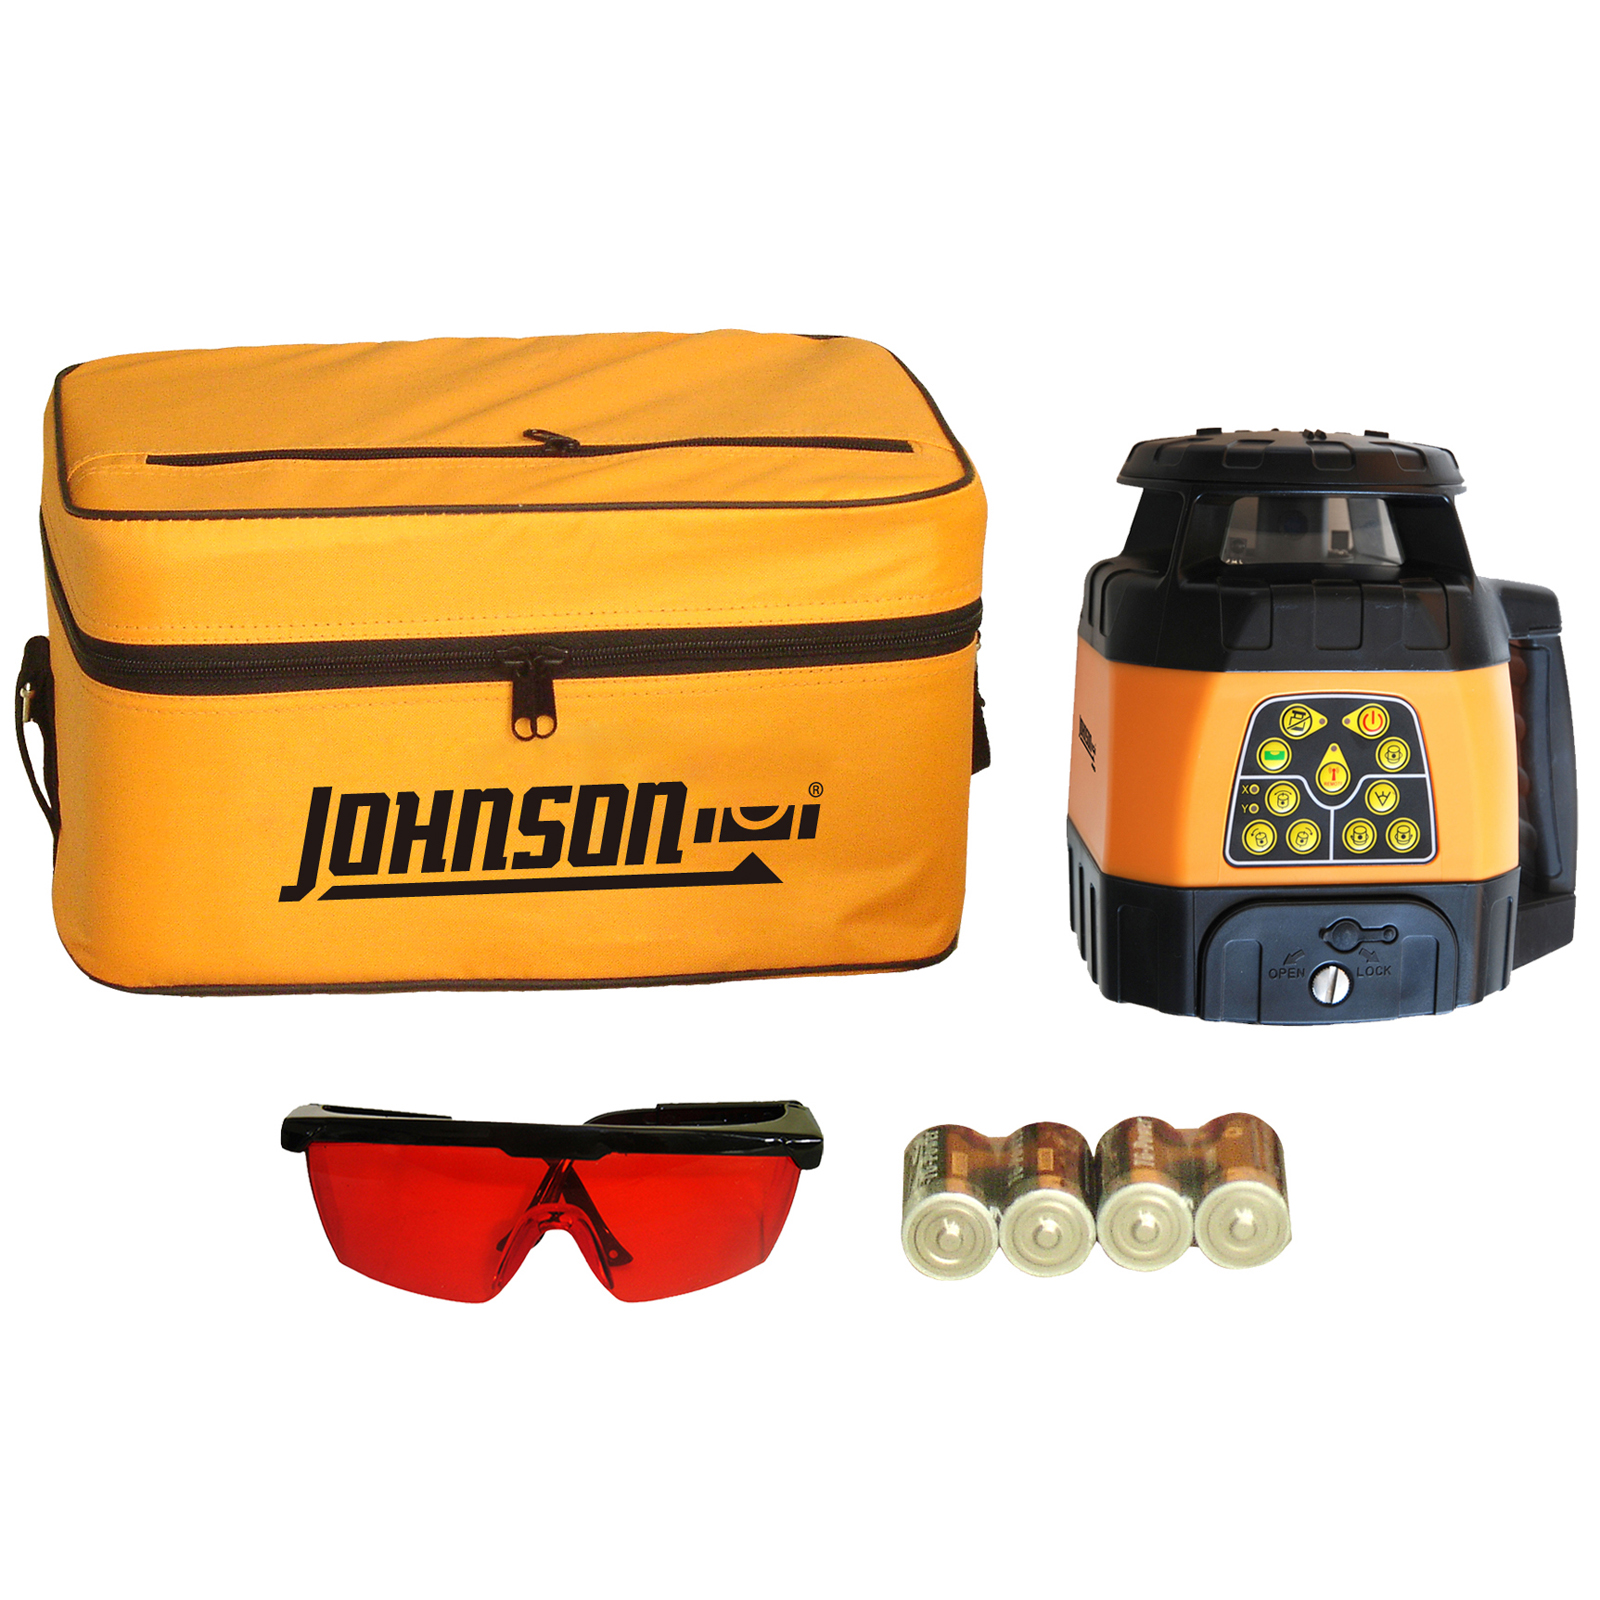 Johnson Level Electronic Self-Leveling Horizontal & Vertical Rotary Laser